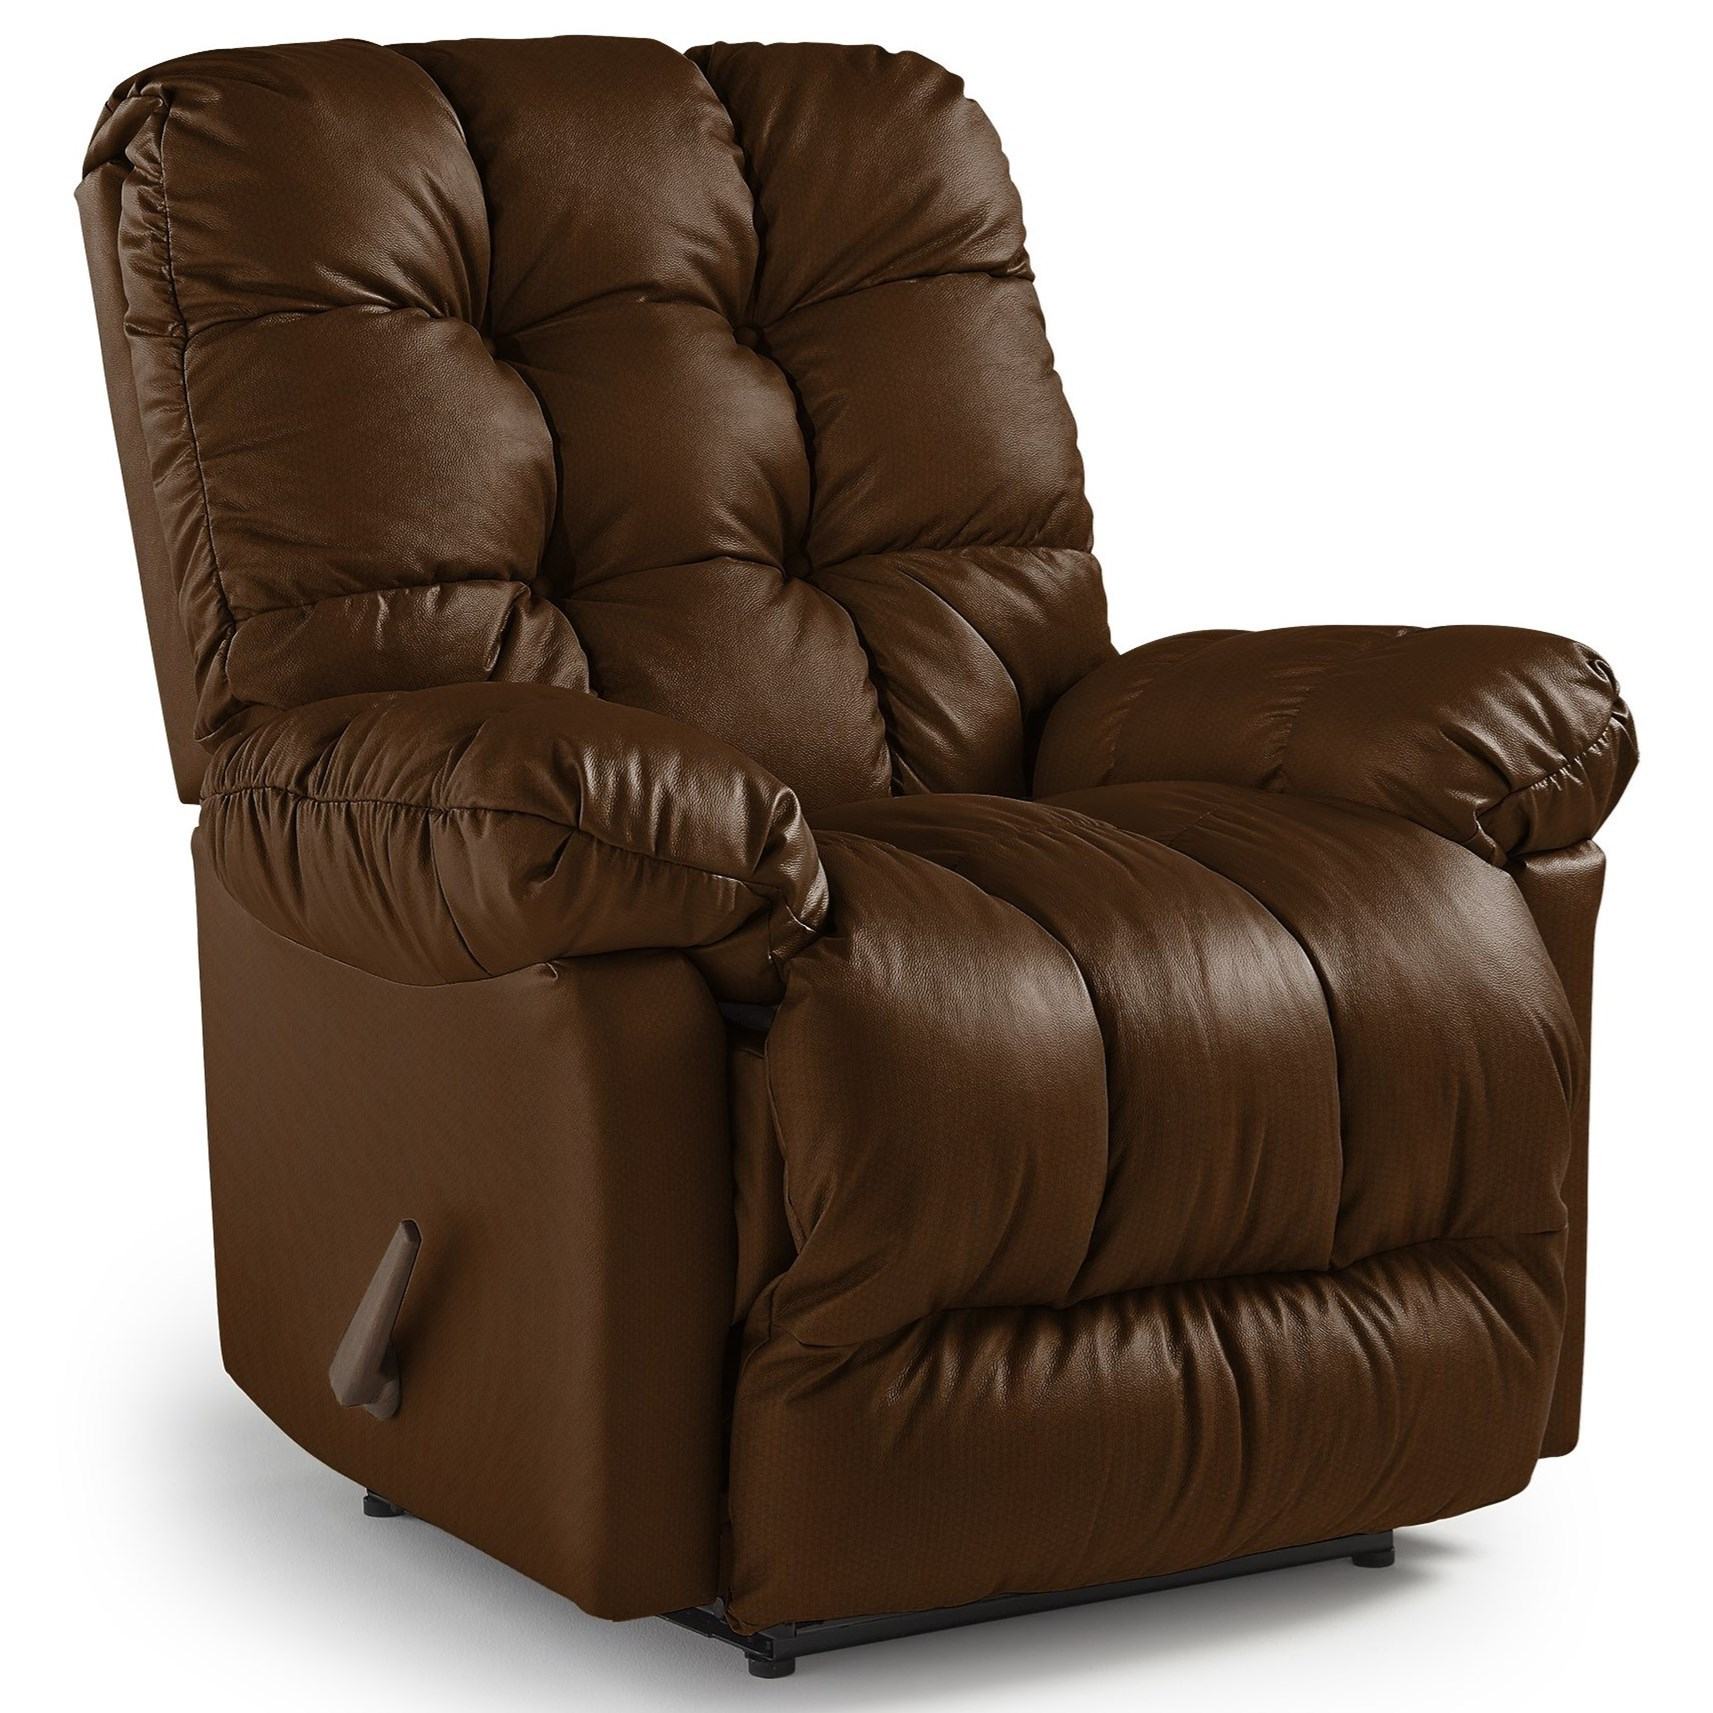 Medium Recliners Brosmer Wallhugger Recliner by Best Home Furnishings at Baer's Furniture